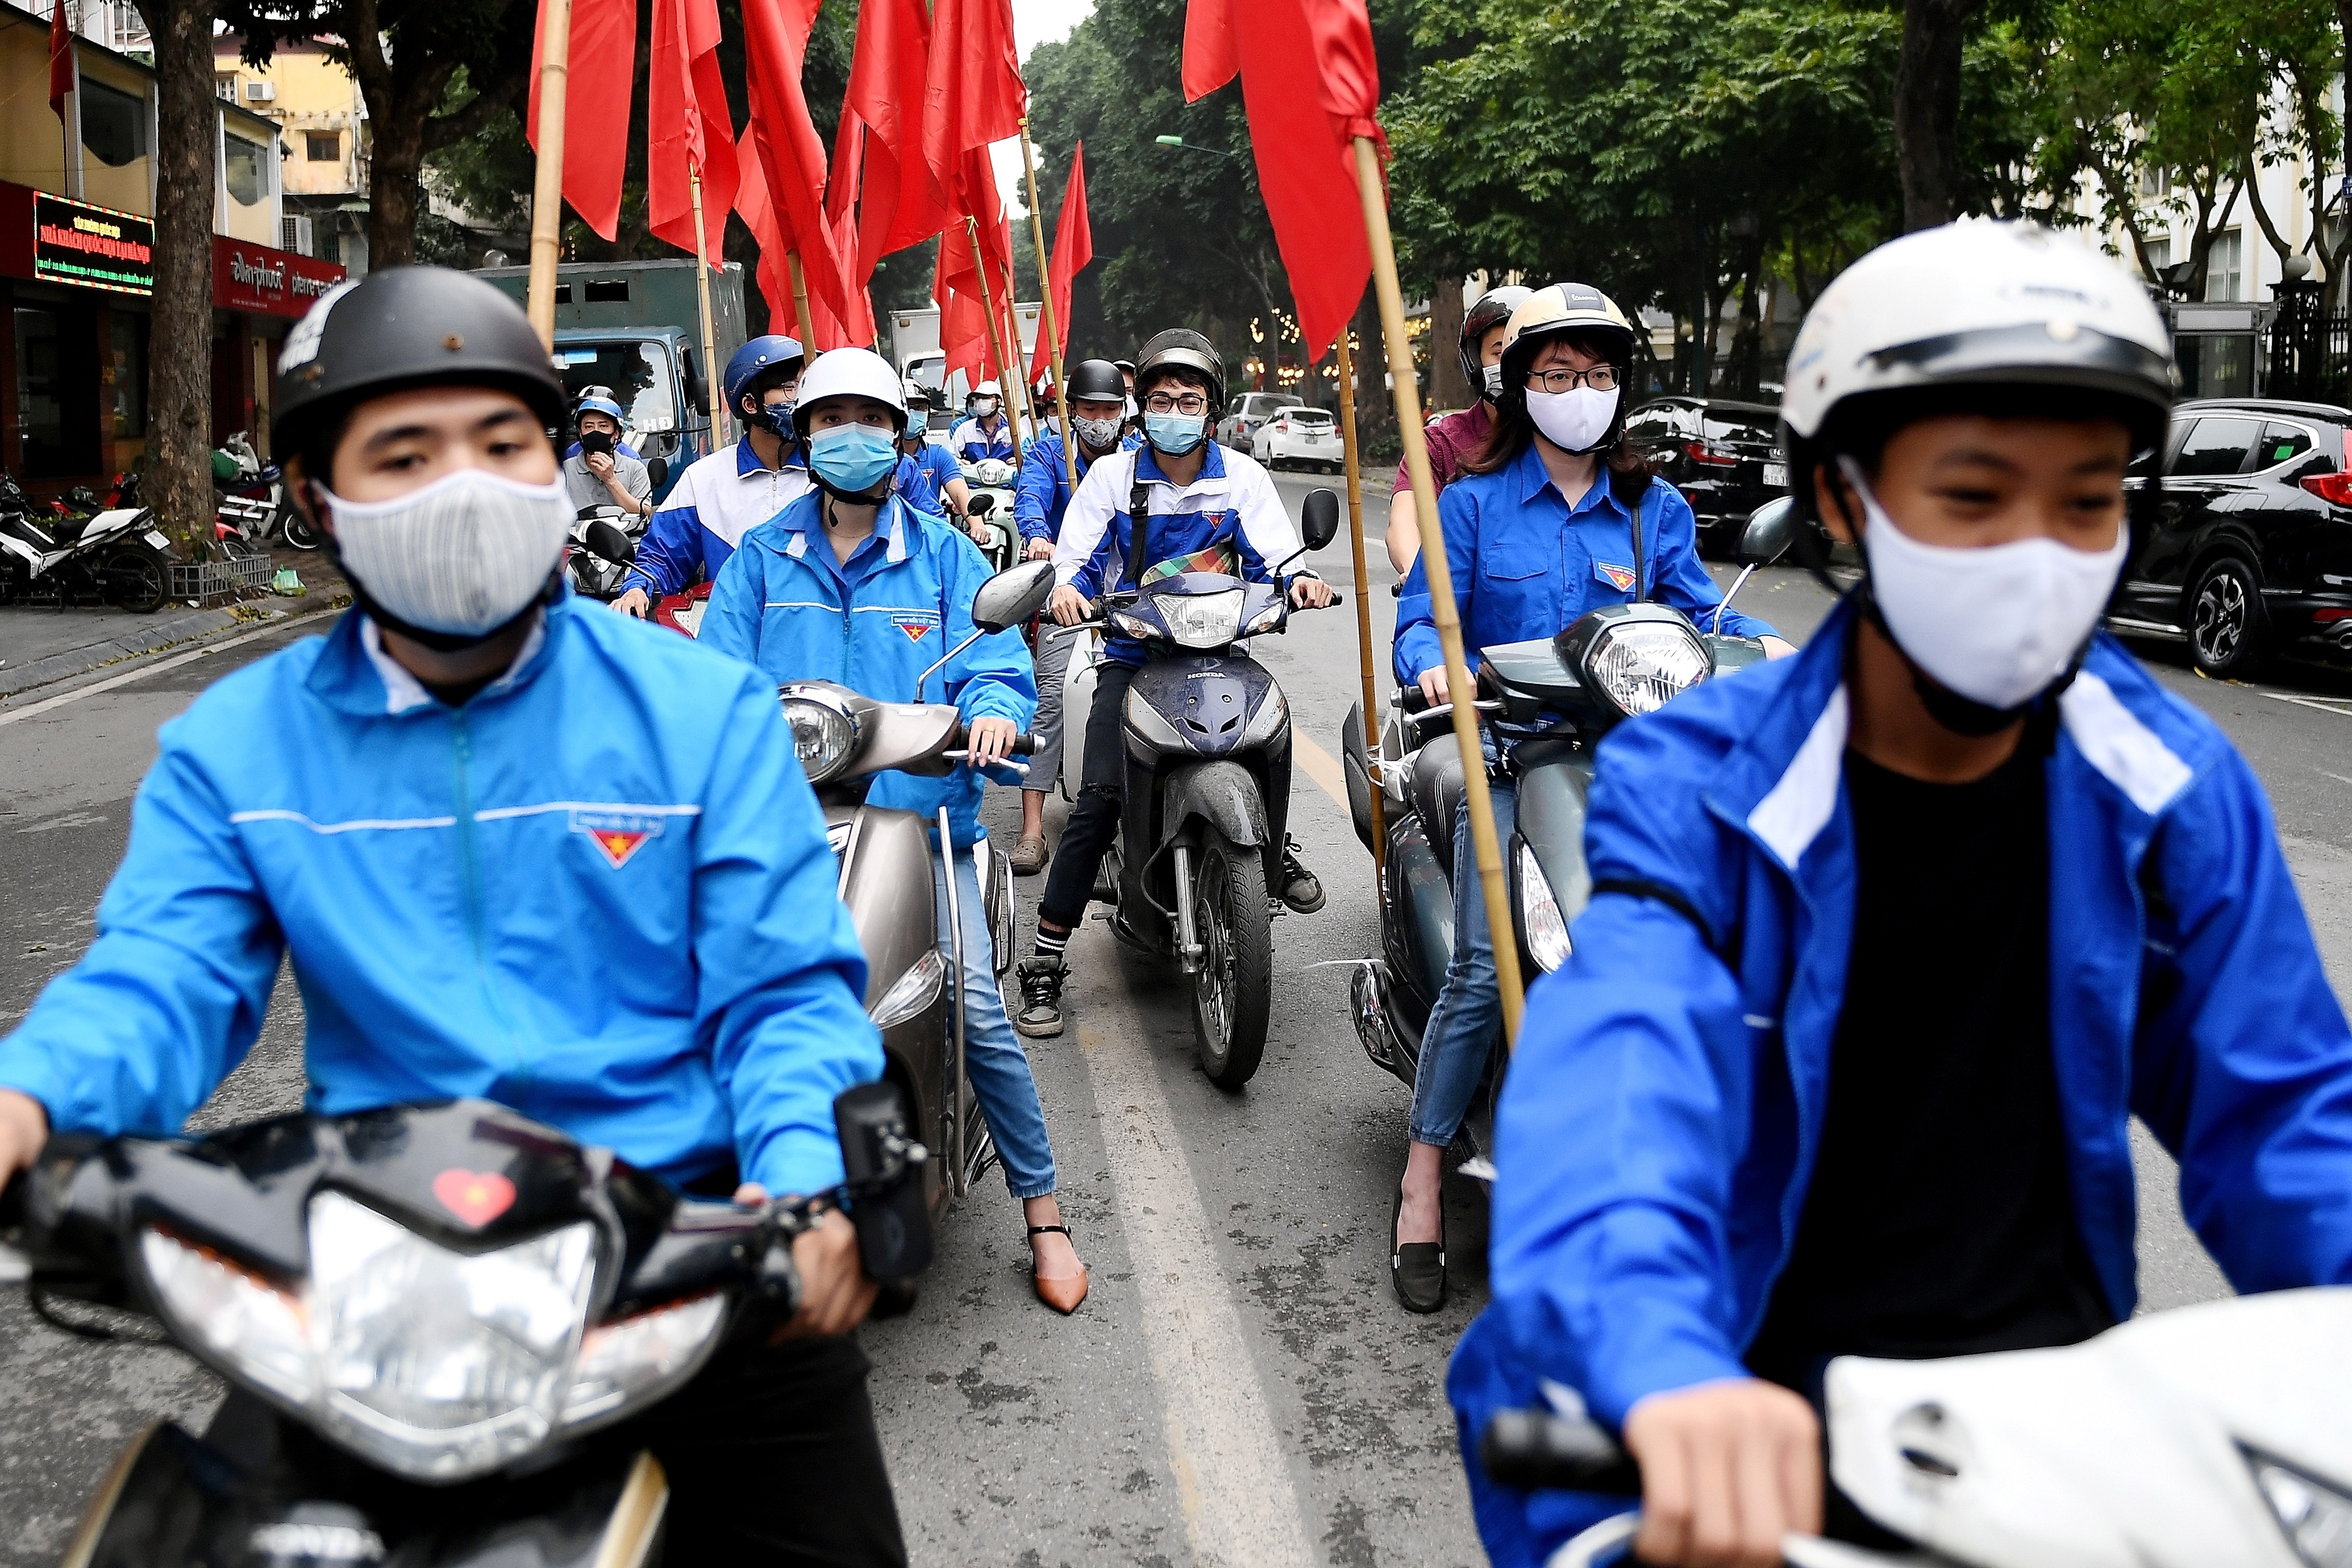 Vietnam's COVID-19 cases rise to 118